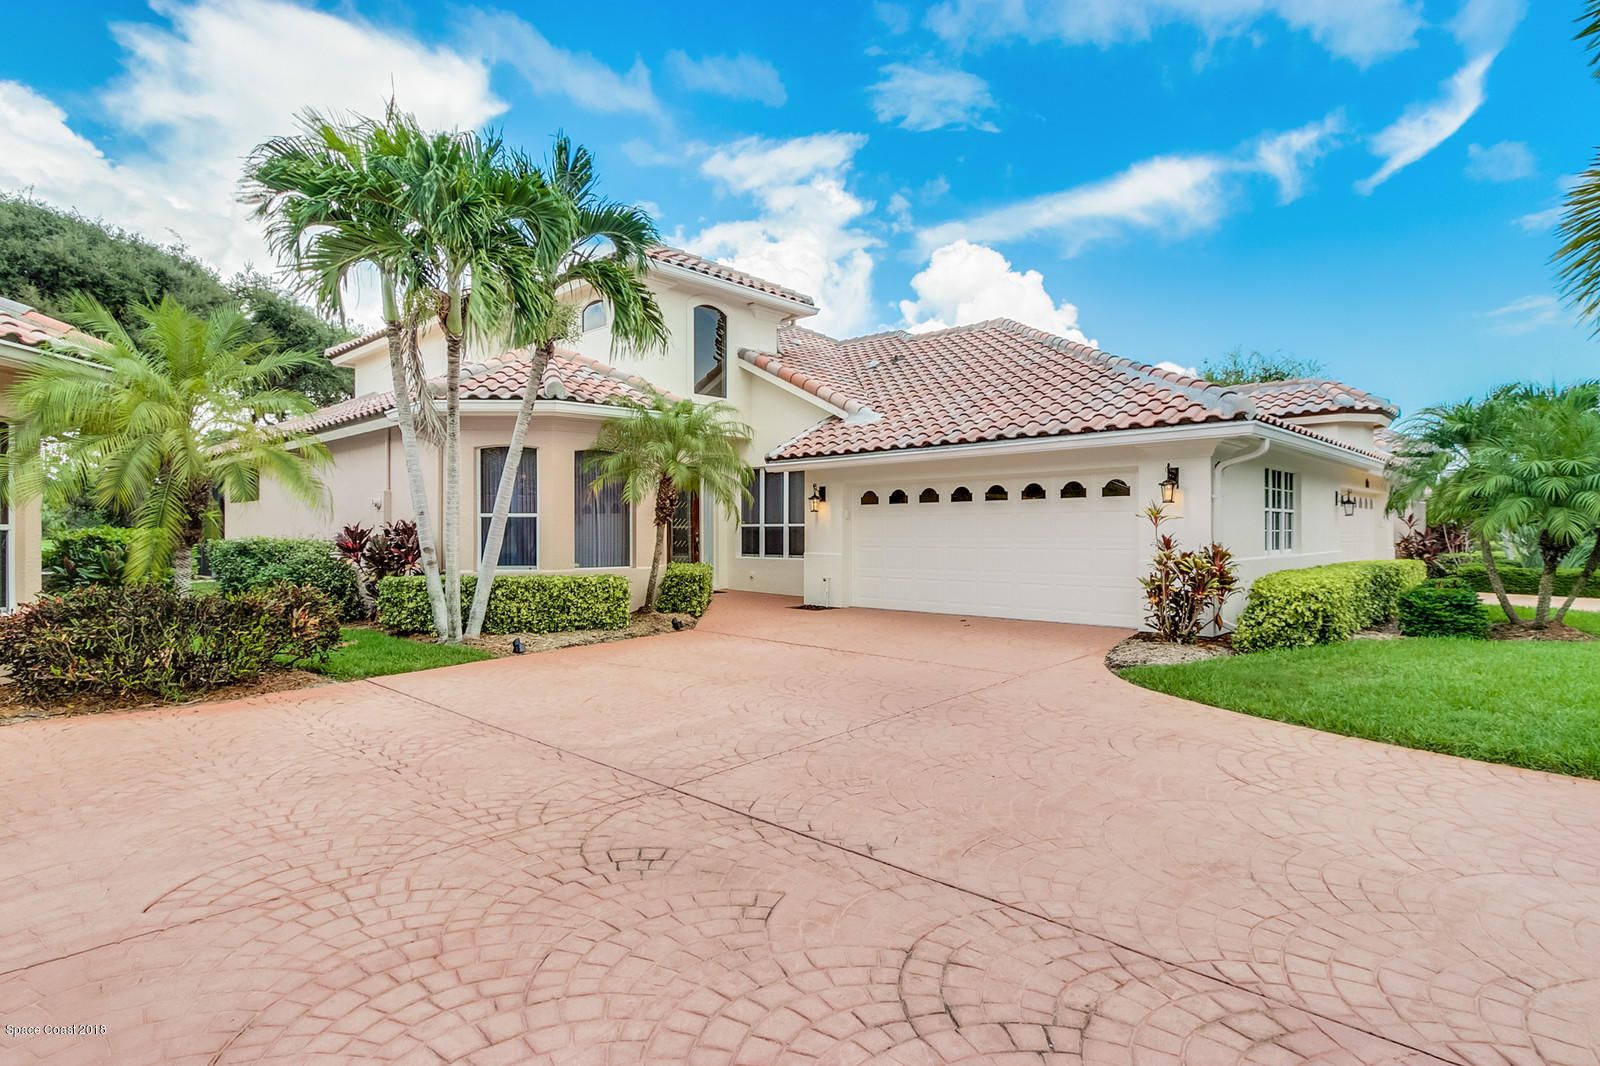 Single Family Home for Sale at 142 Whaler 142 Whaler Melbourne Beach, Florida 32951 United States